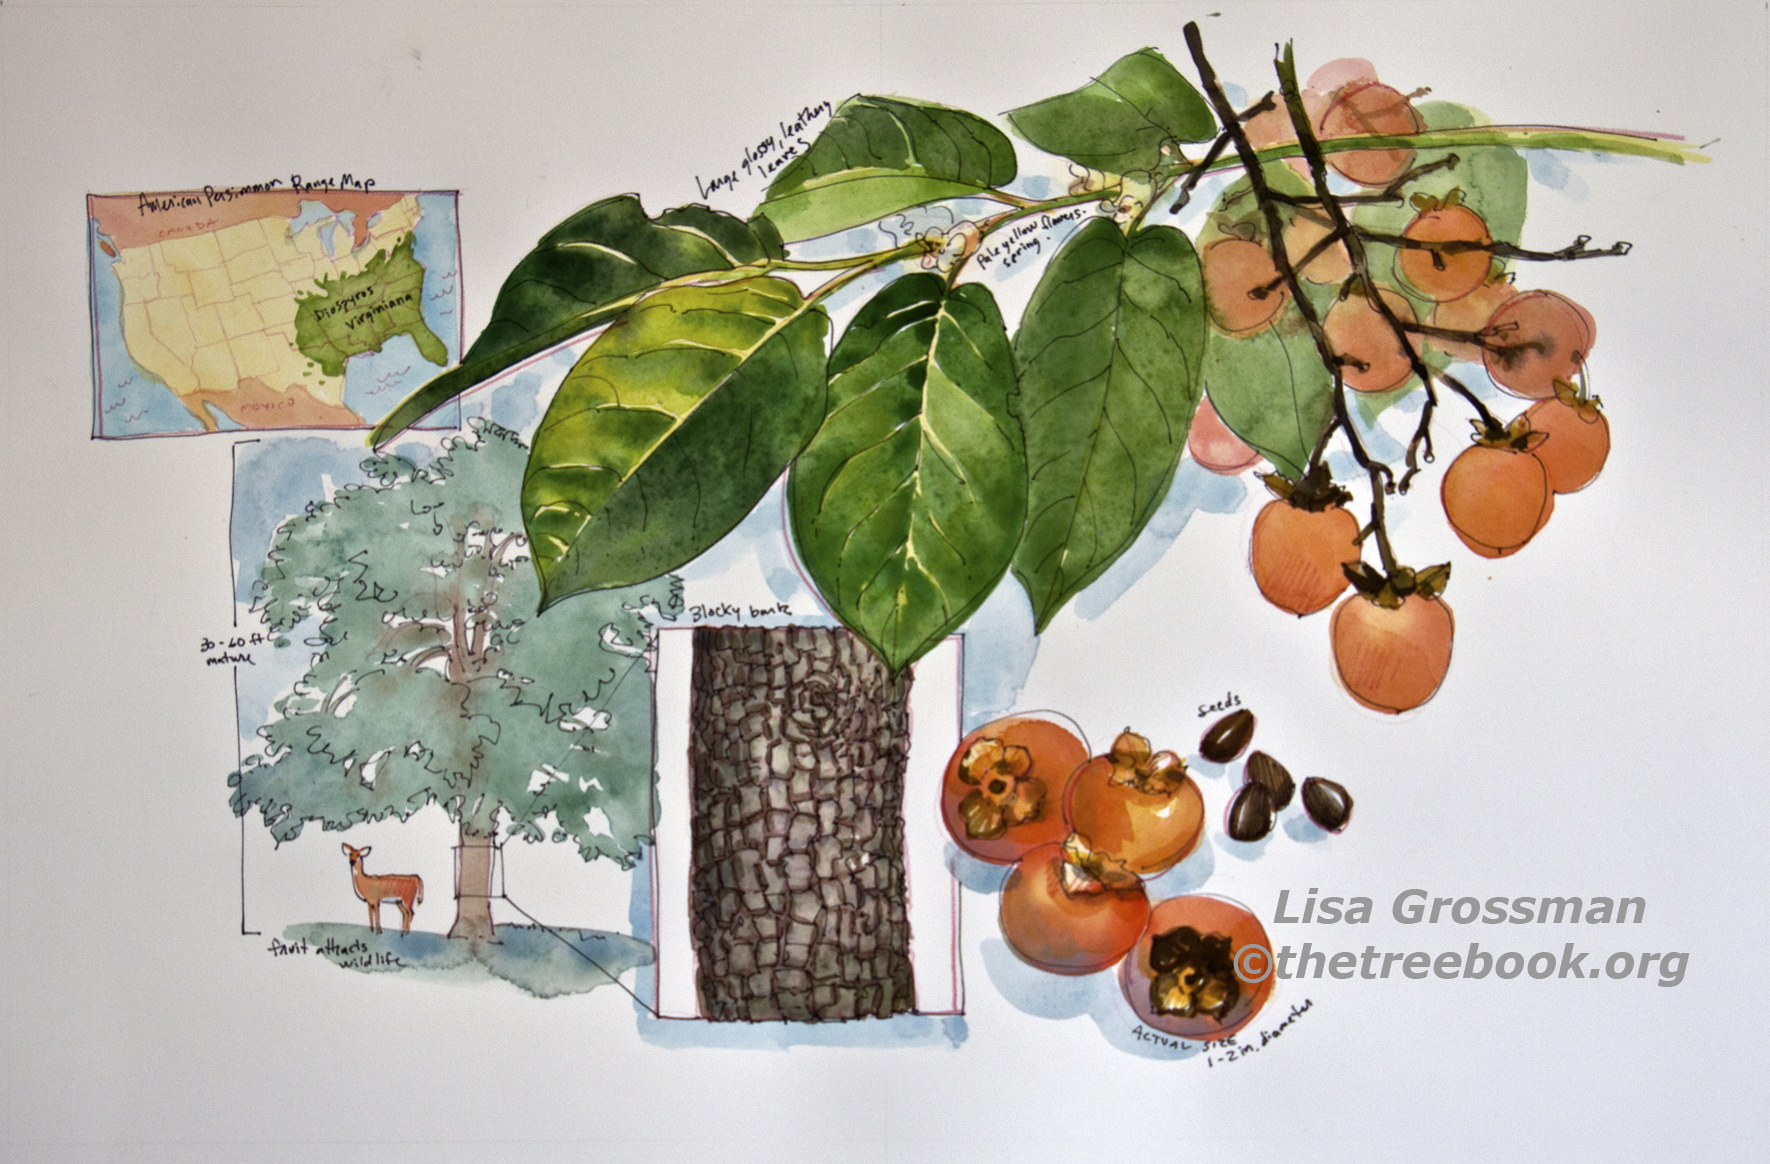 Lisa Grossman, Persimmon